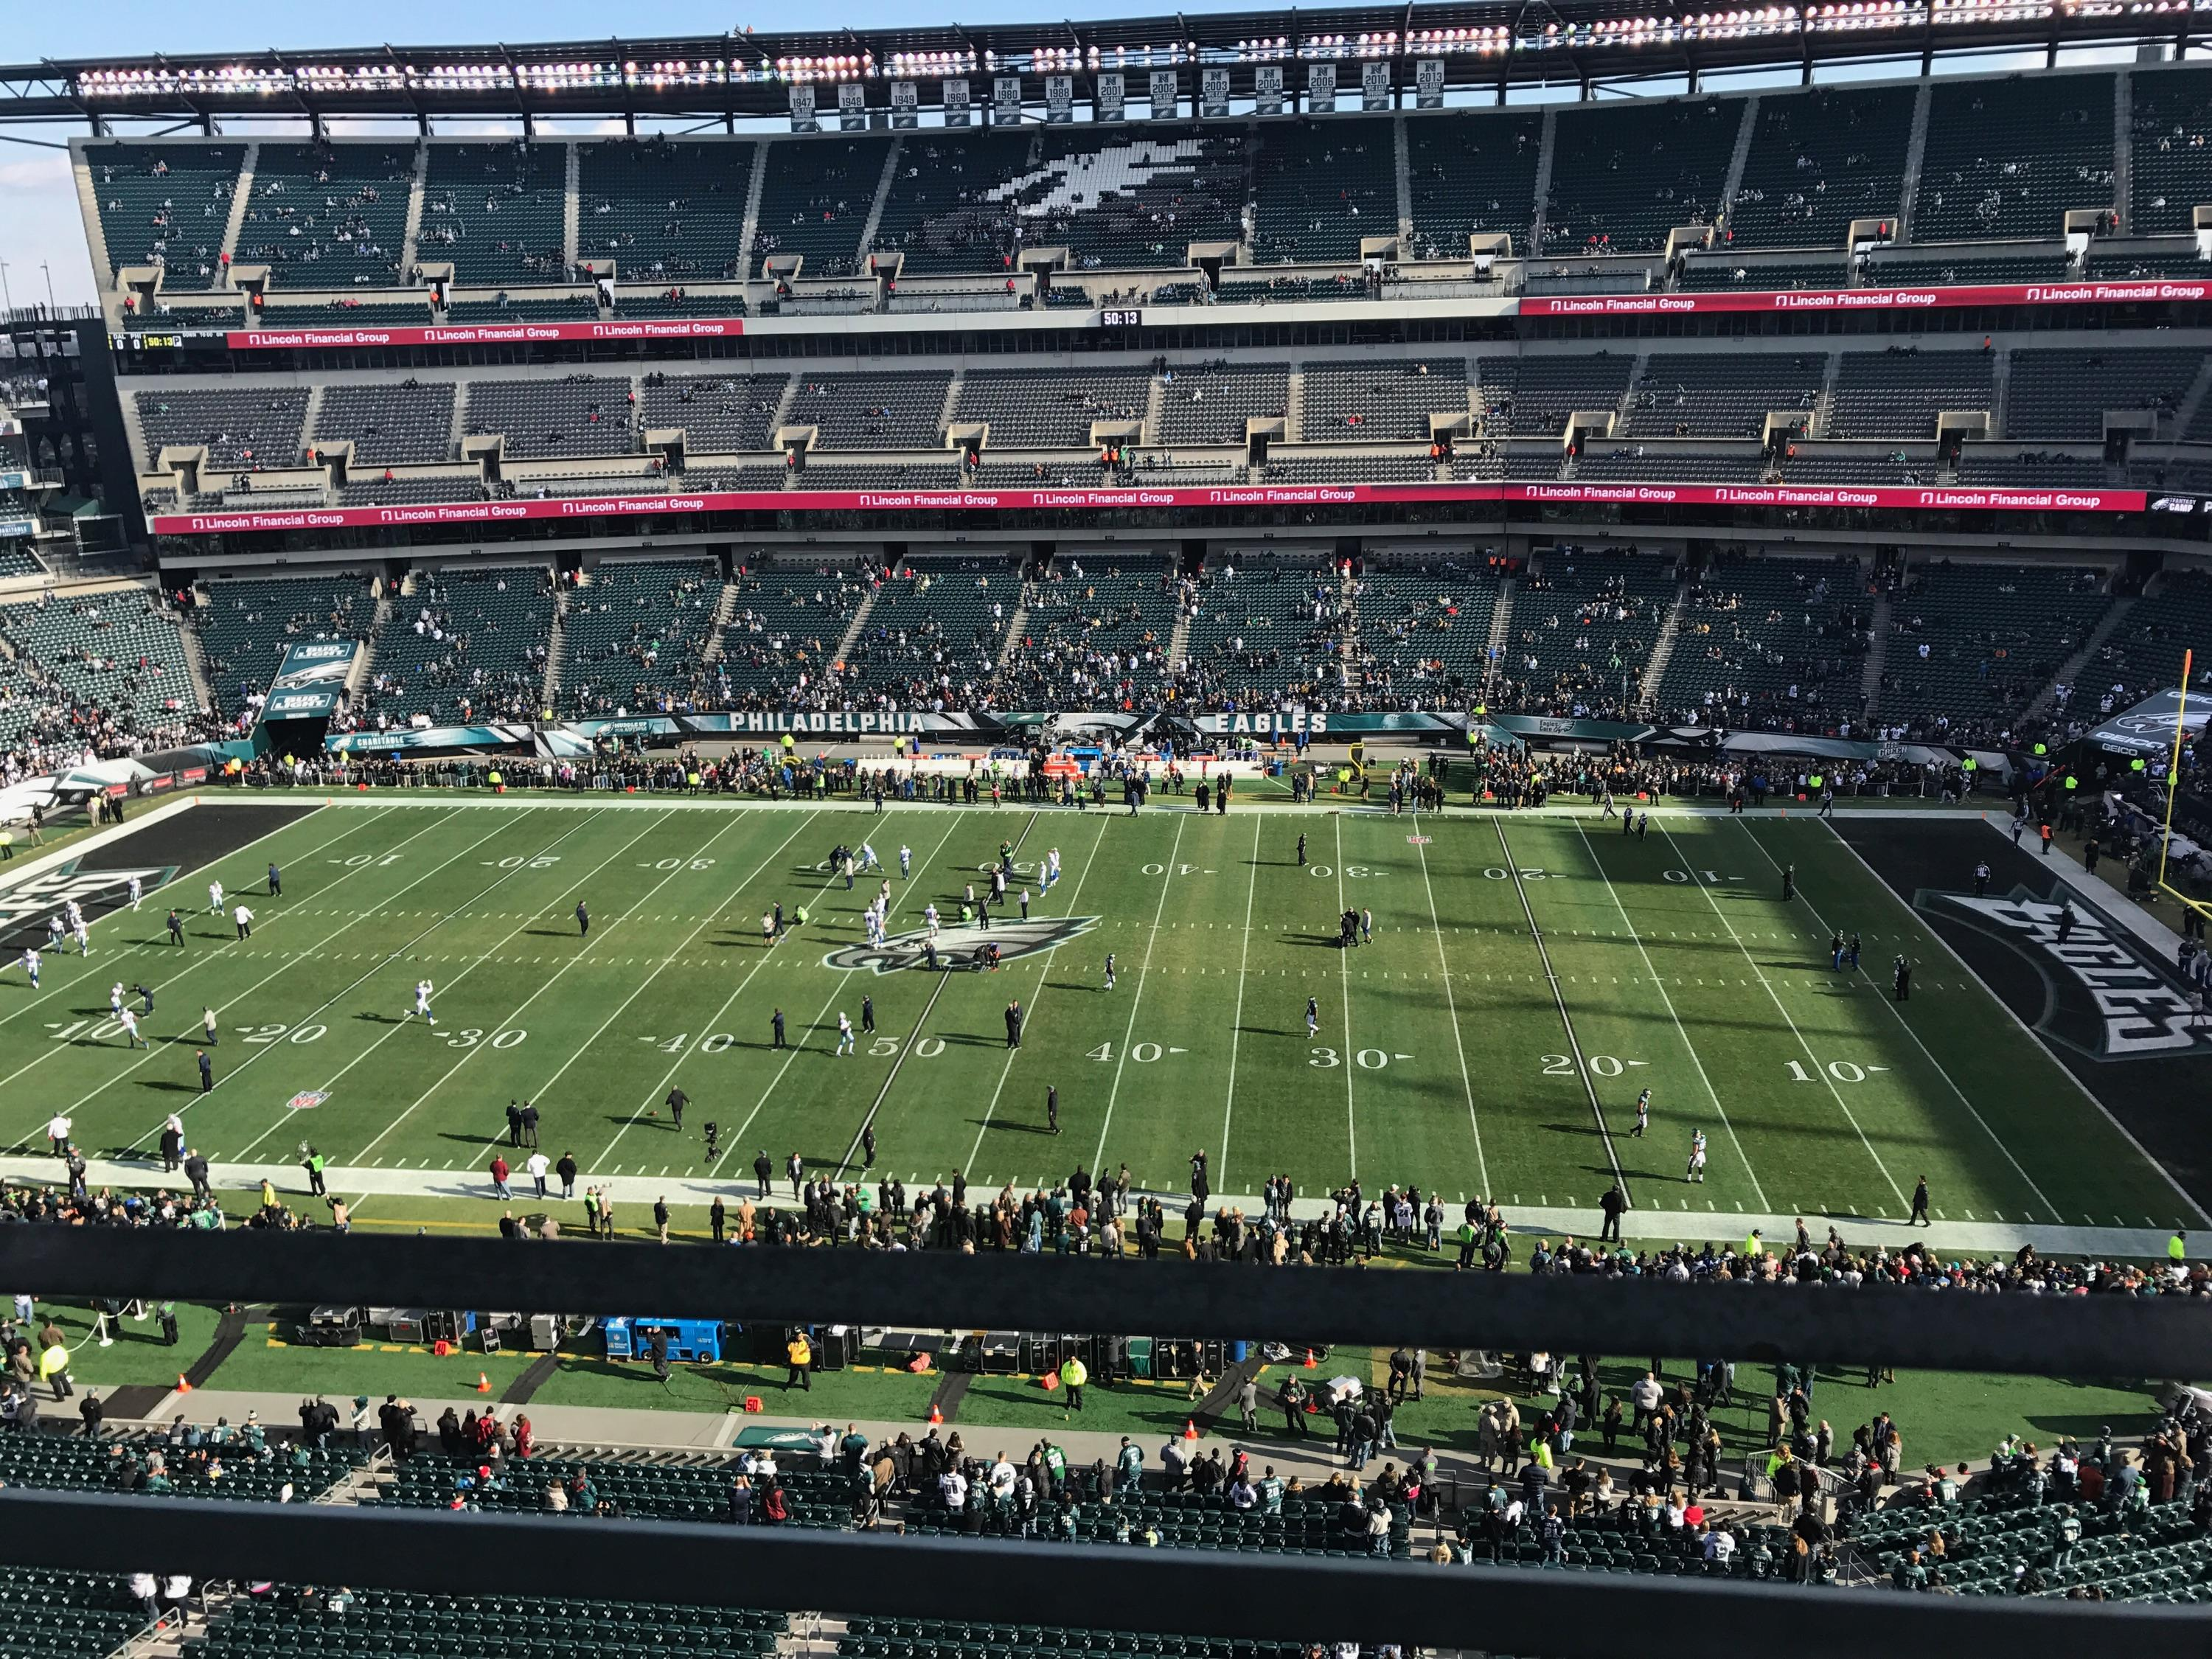 Lincoln Financial Field Section 202 Row 1 Seat 9